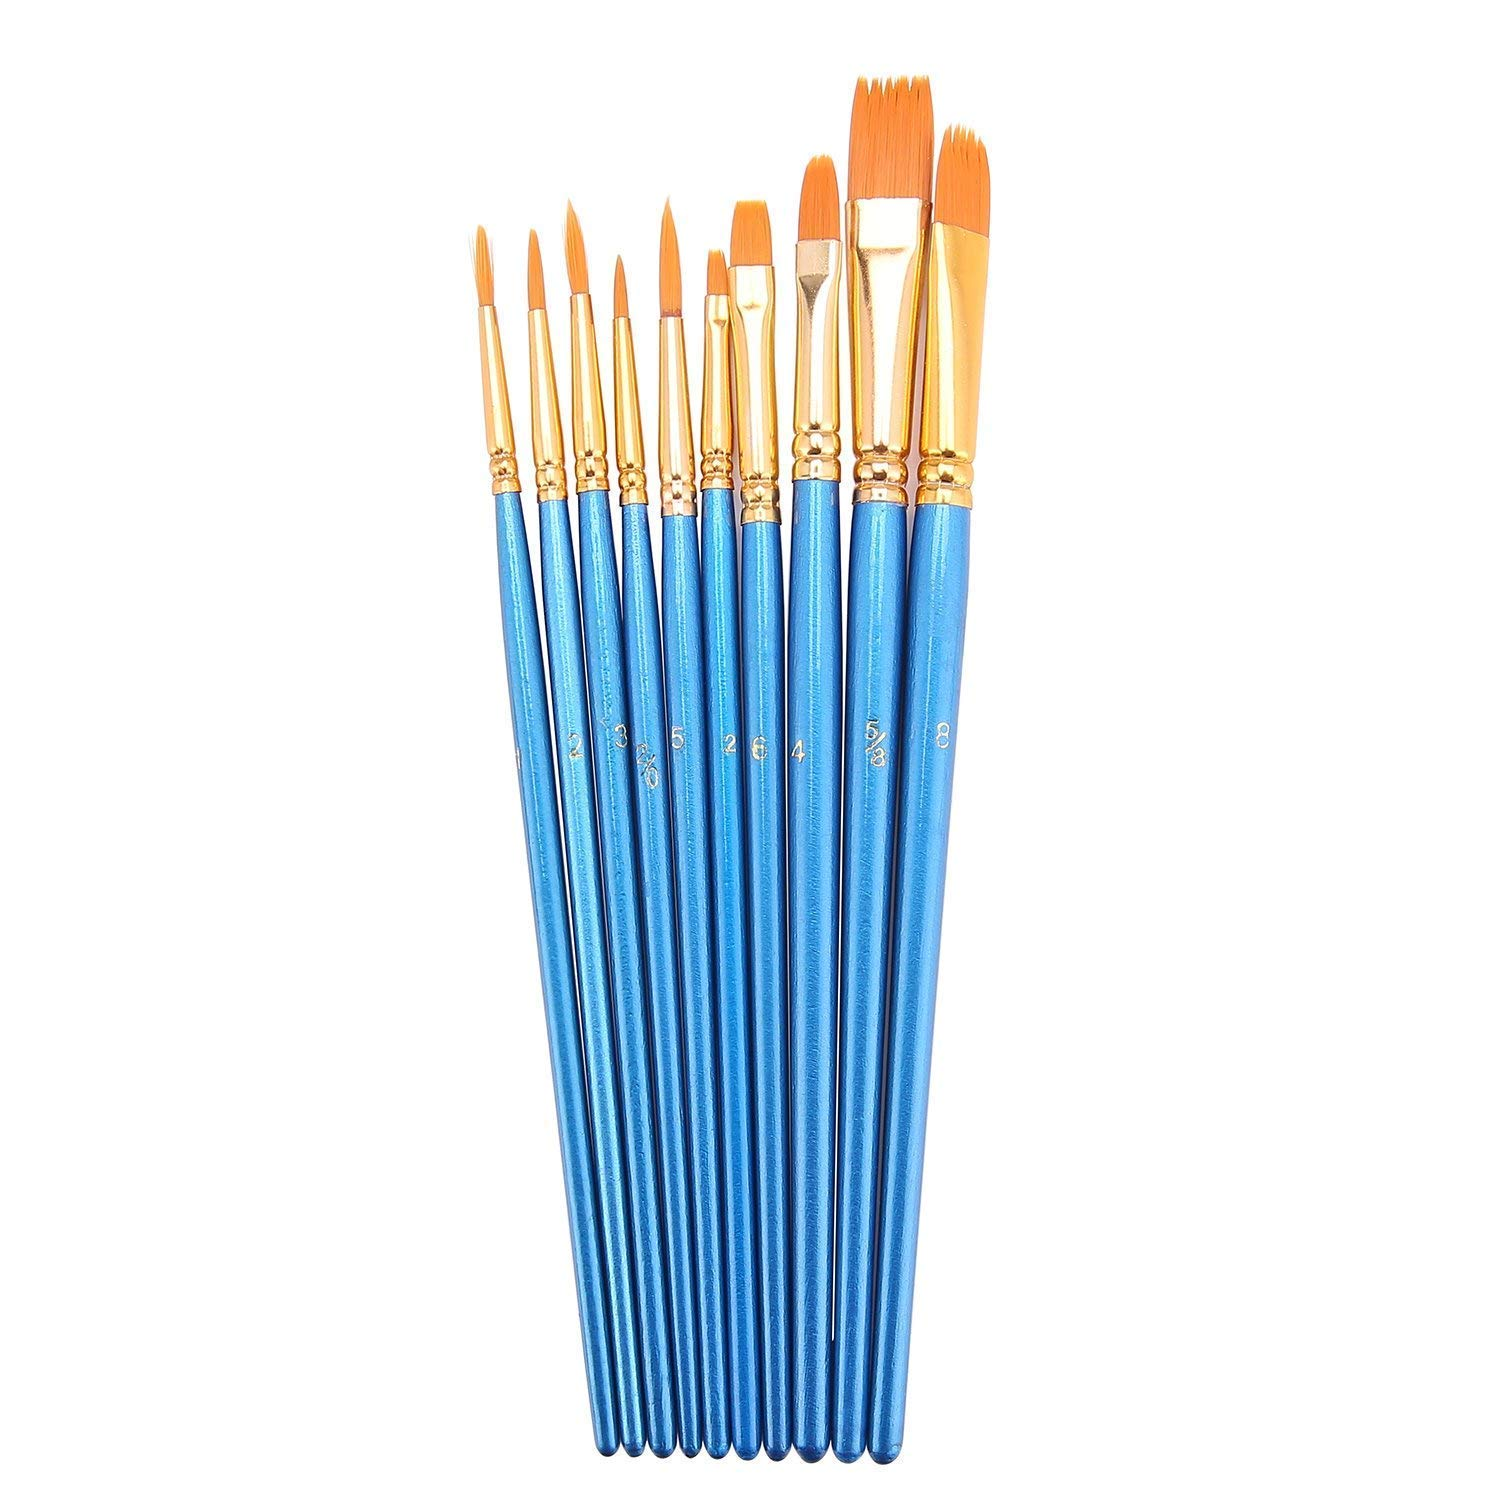 10Pieces Round Pointed Tip Nylon Hair Brush Set,Brush Set, Art and Watercolor Brushes, Acrylic Paint Brushes, Oil Painting Supplies, Blue